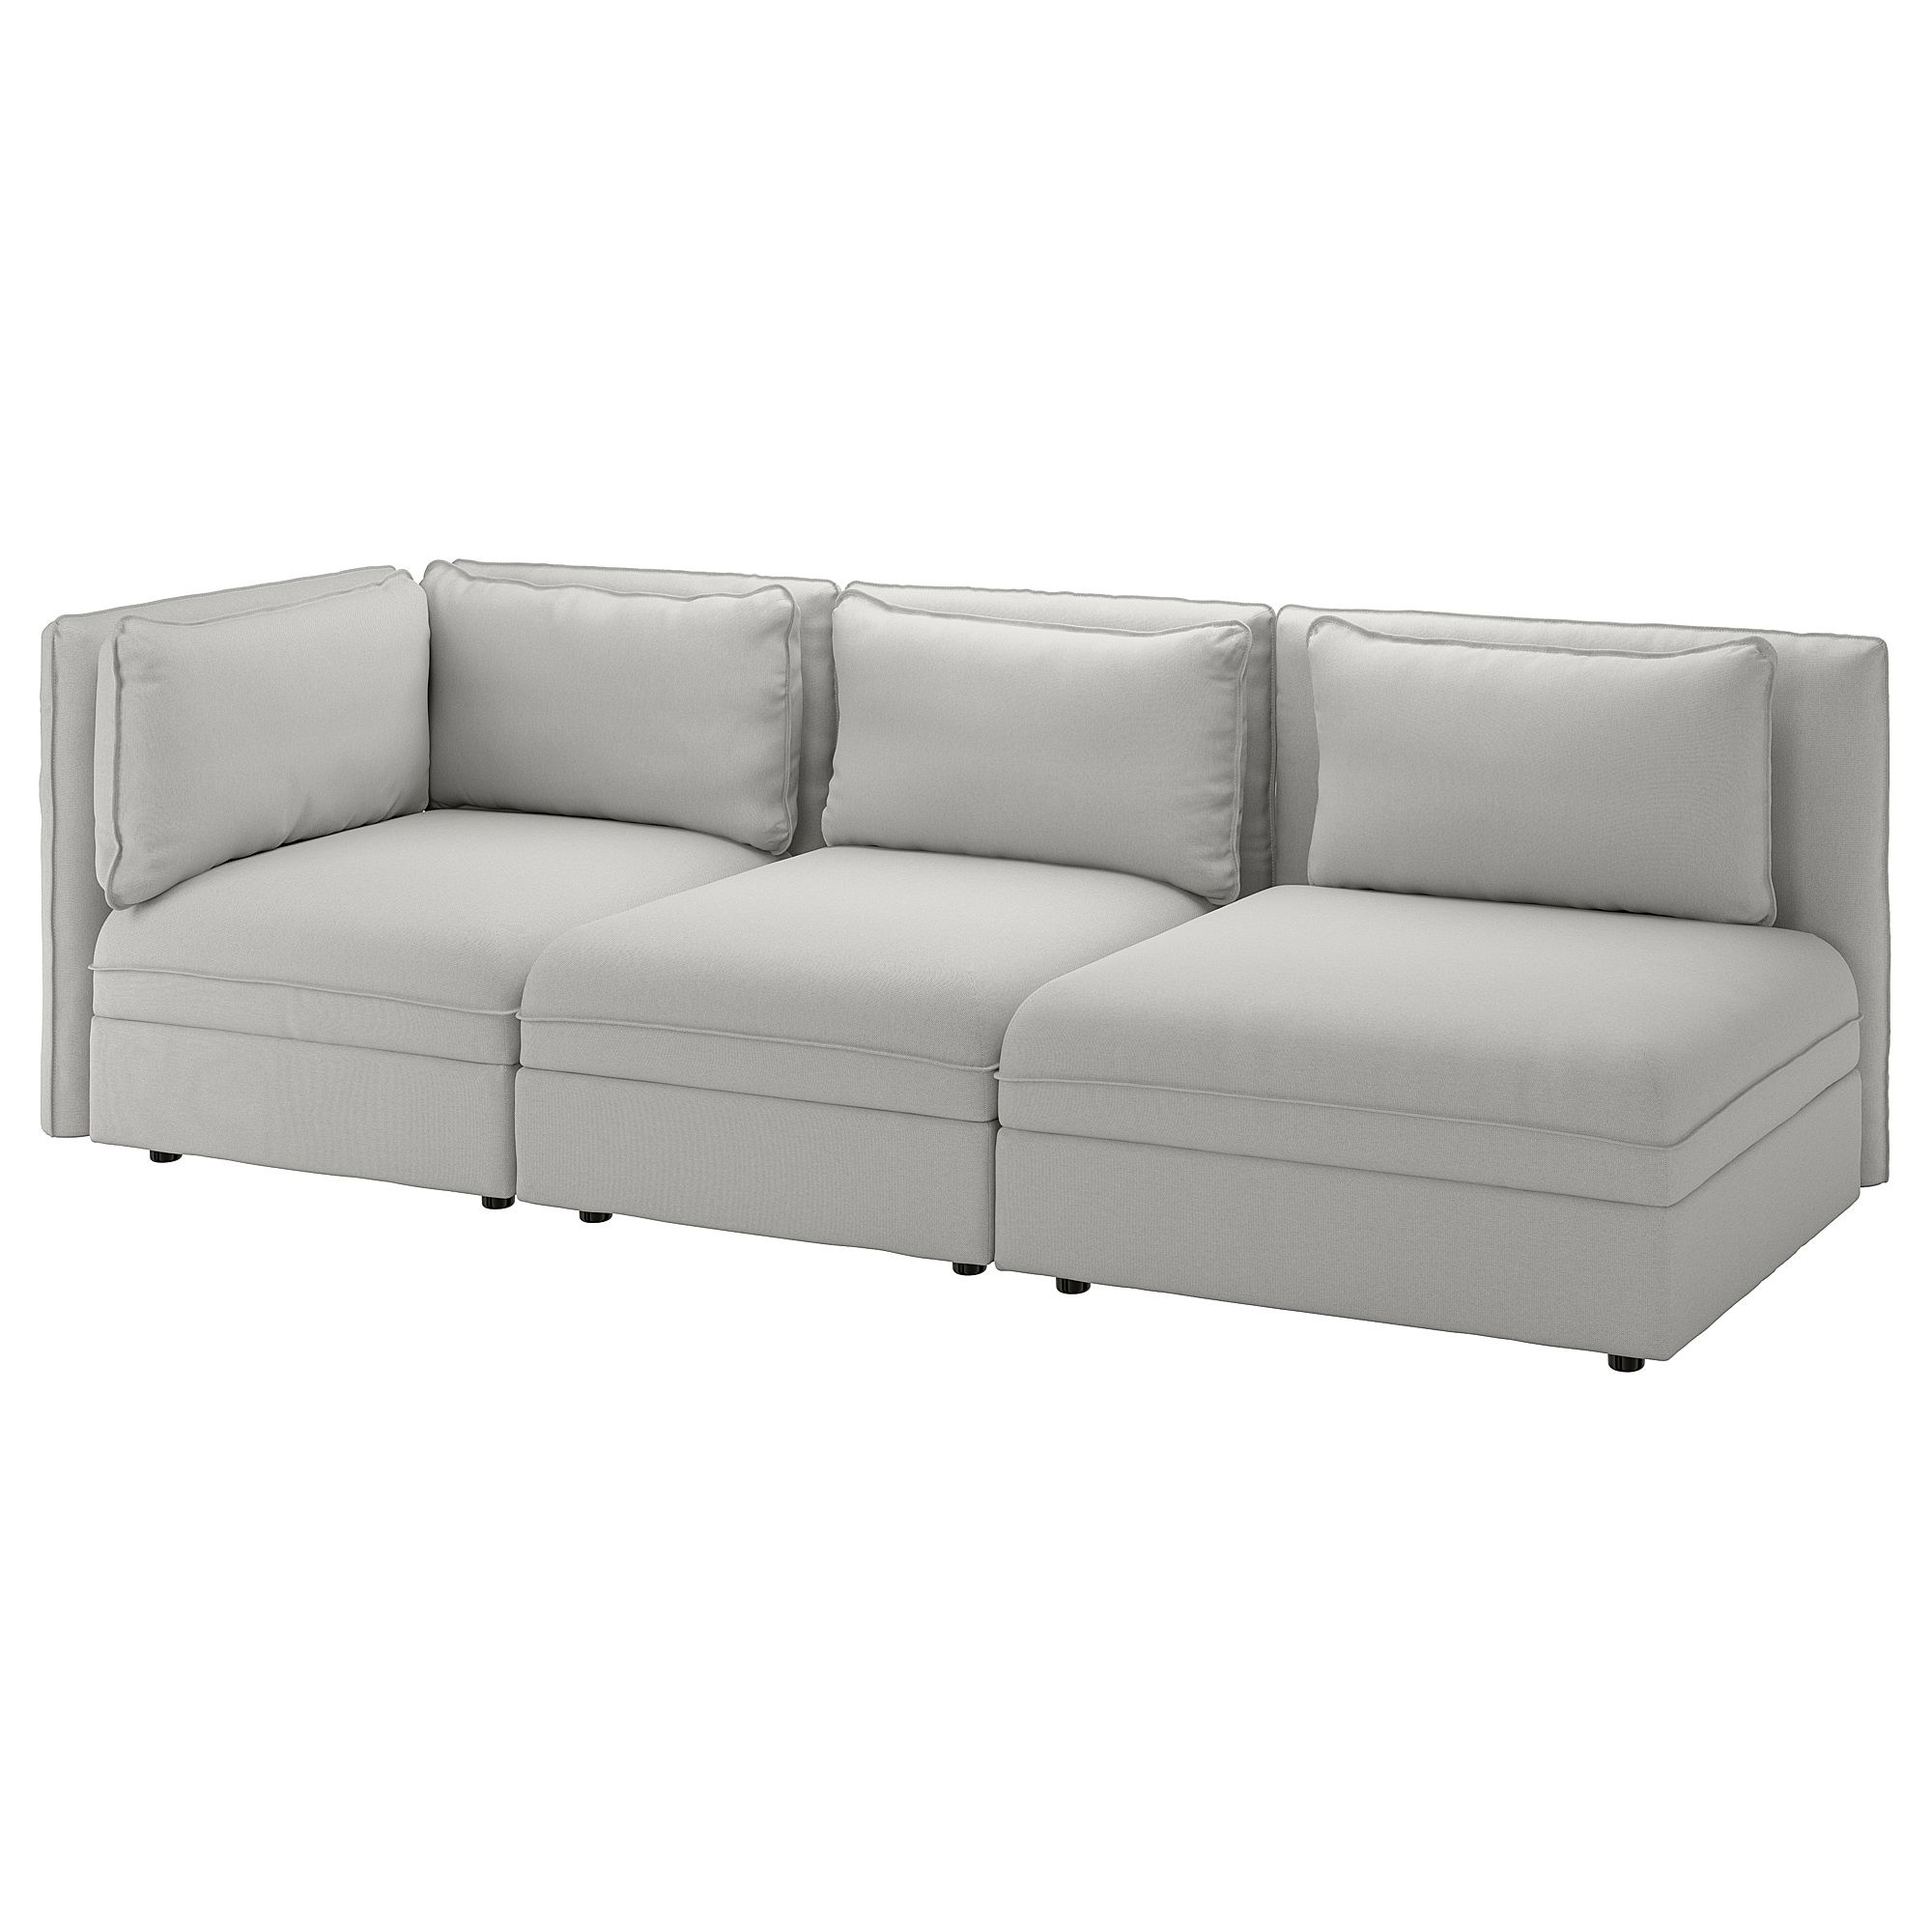 Vallentuna Modular Sofas Ikea Modular Sofa Sofa Flexible Furniture